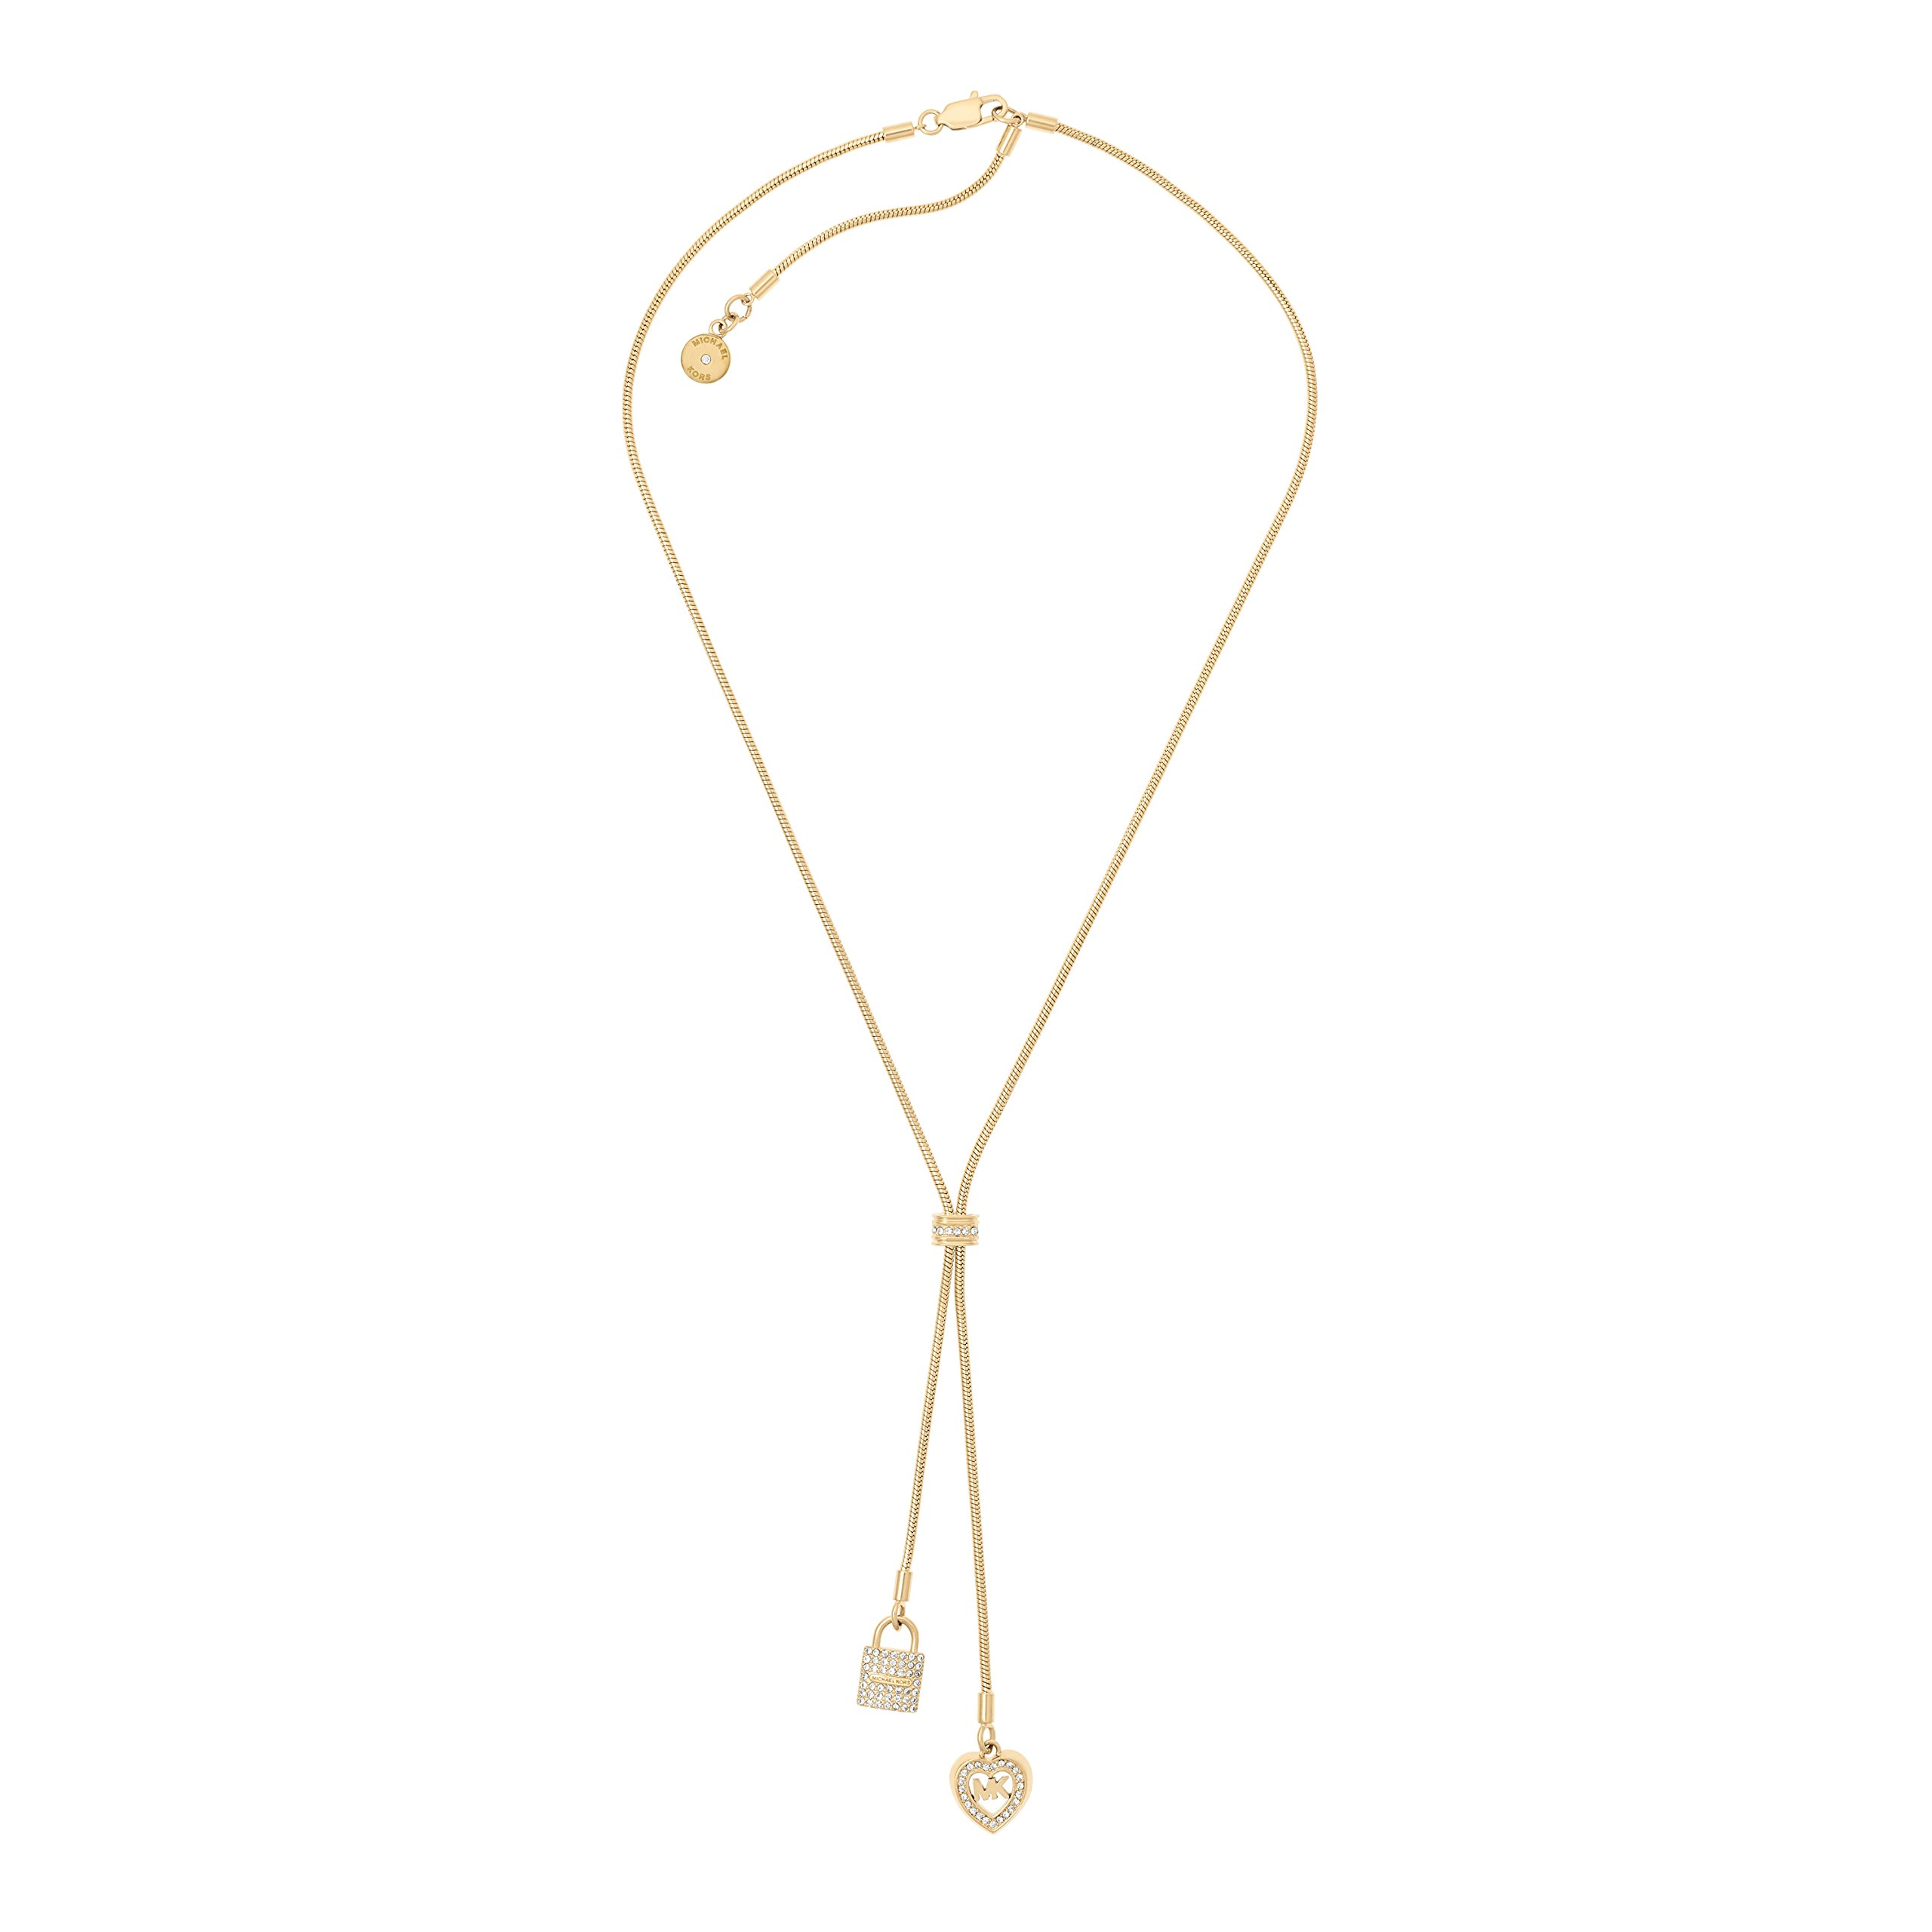 Michael Kors Womens Gold-Tone Charm Y Shaped Necklace, One Size